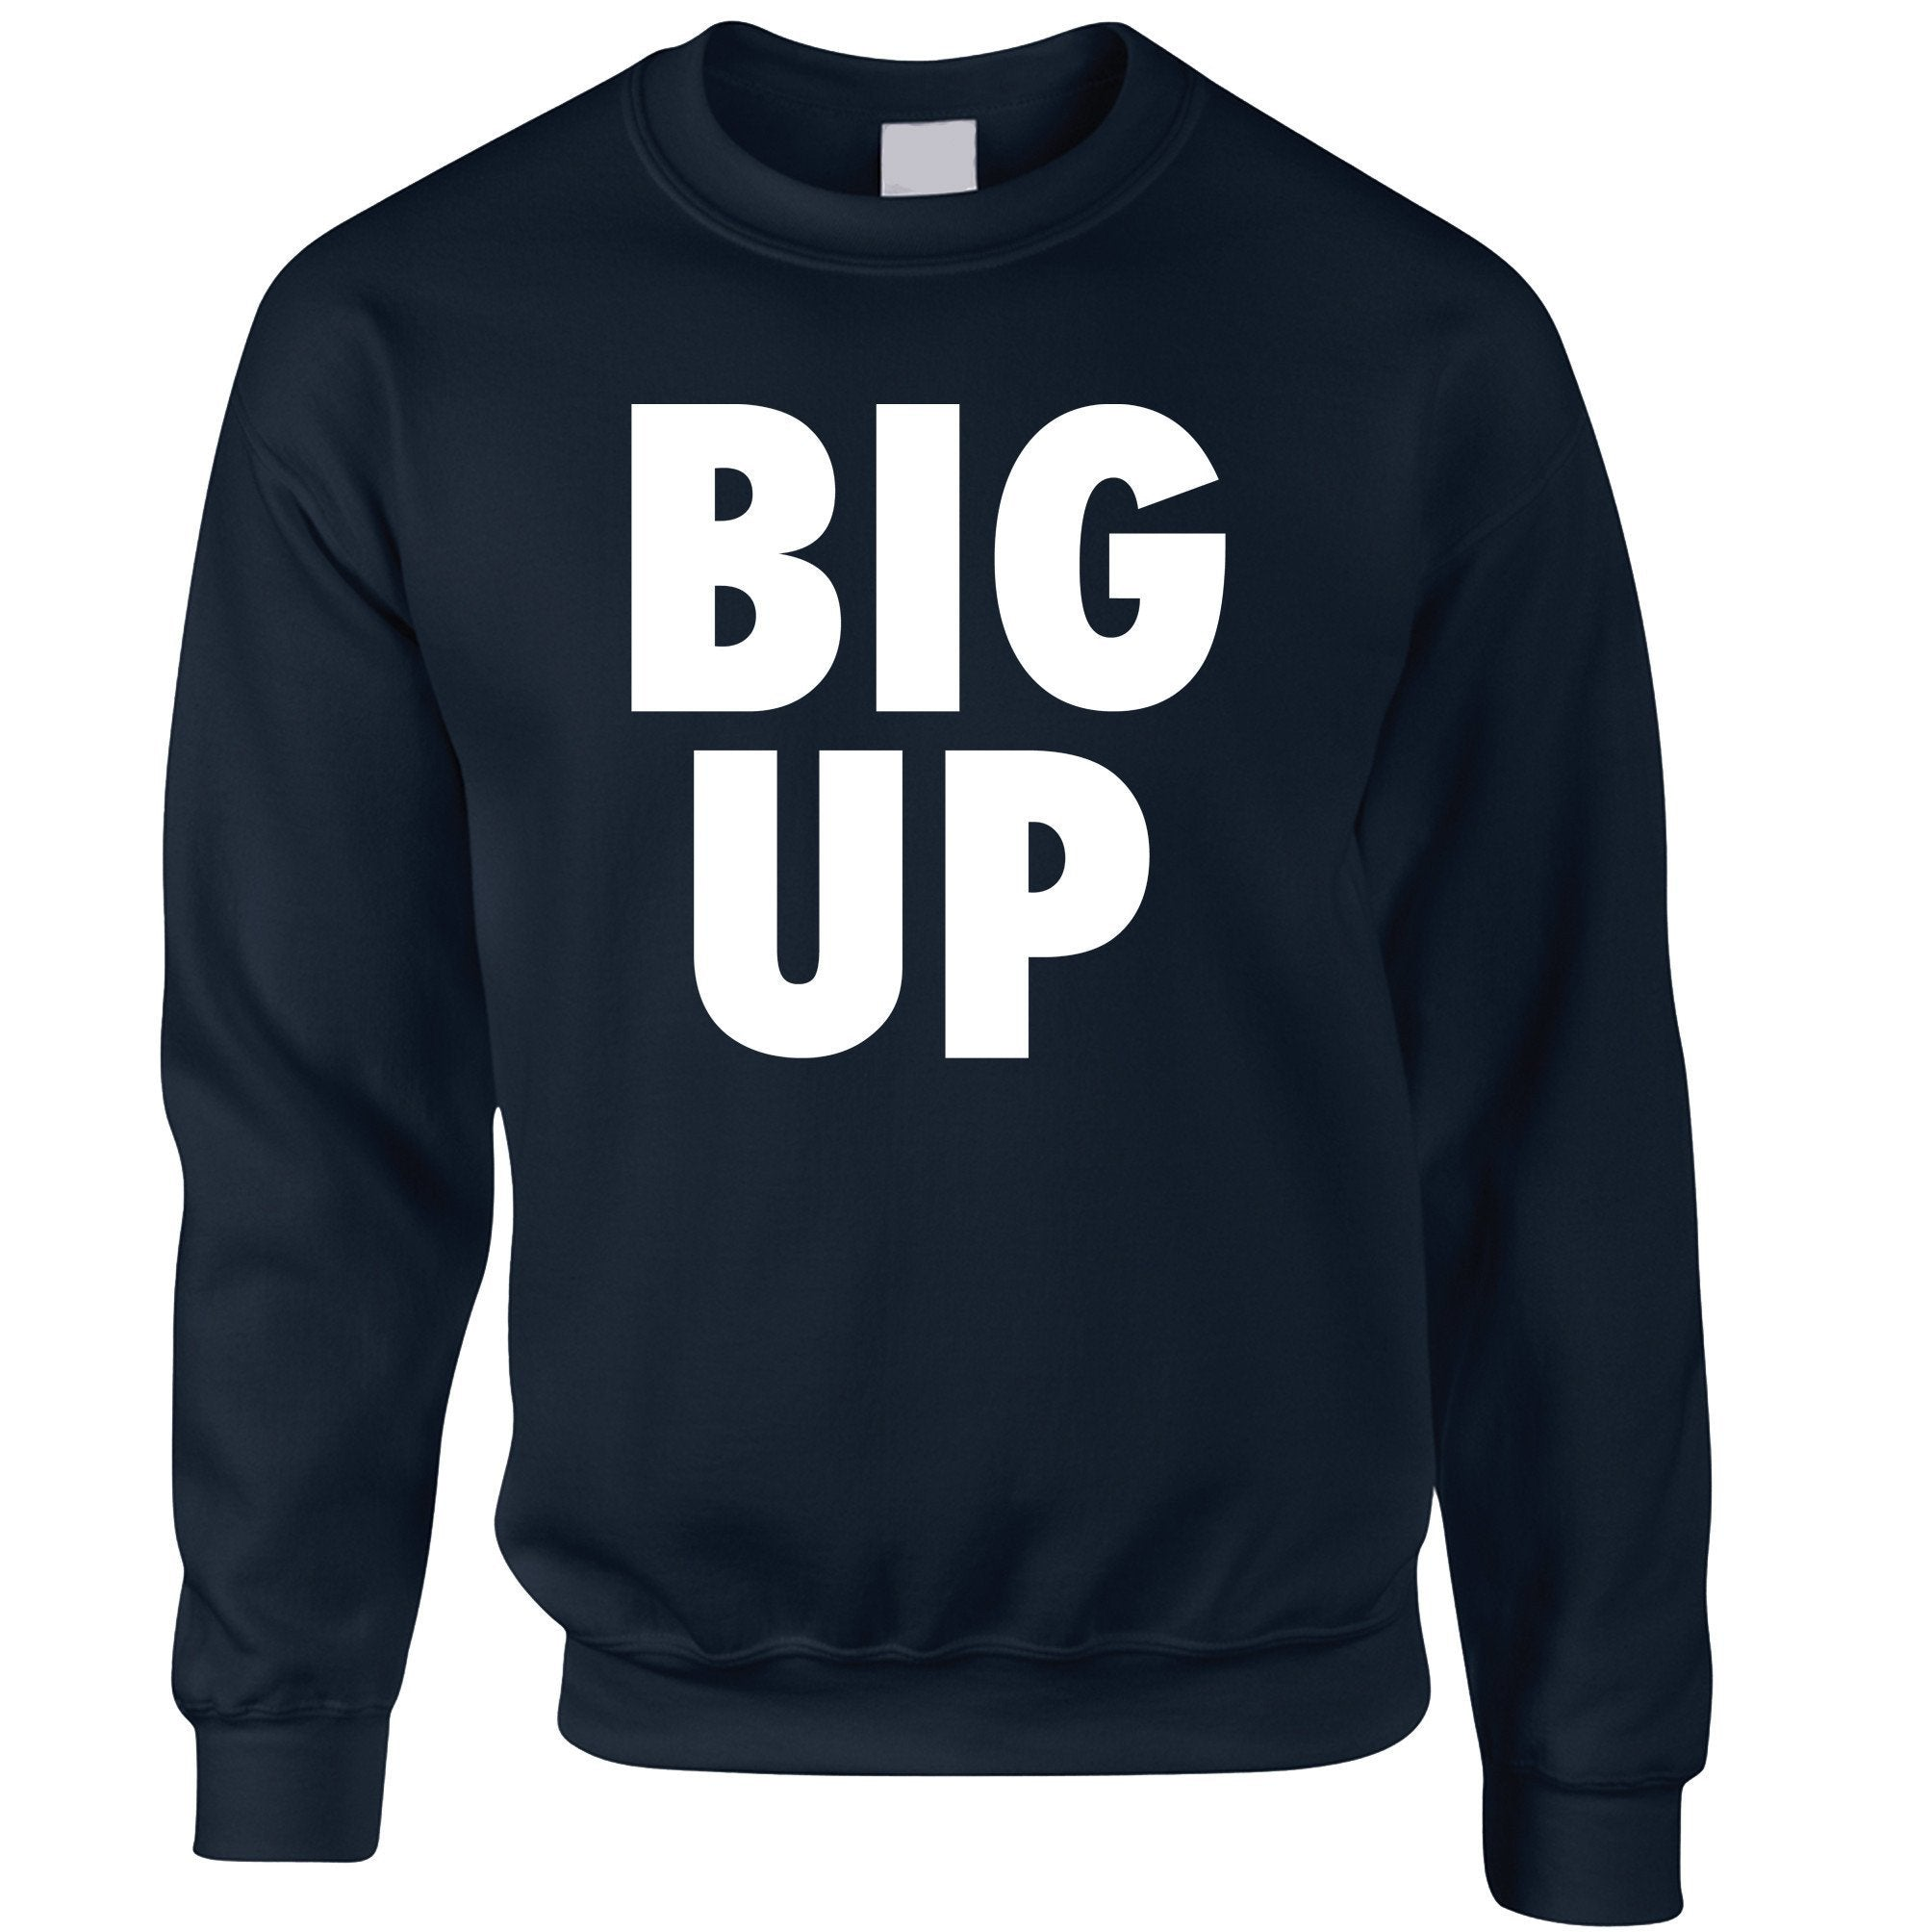 Streetwear Slogan Jumper Big Up Text Sweatshirt Sweater